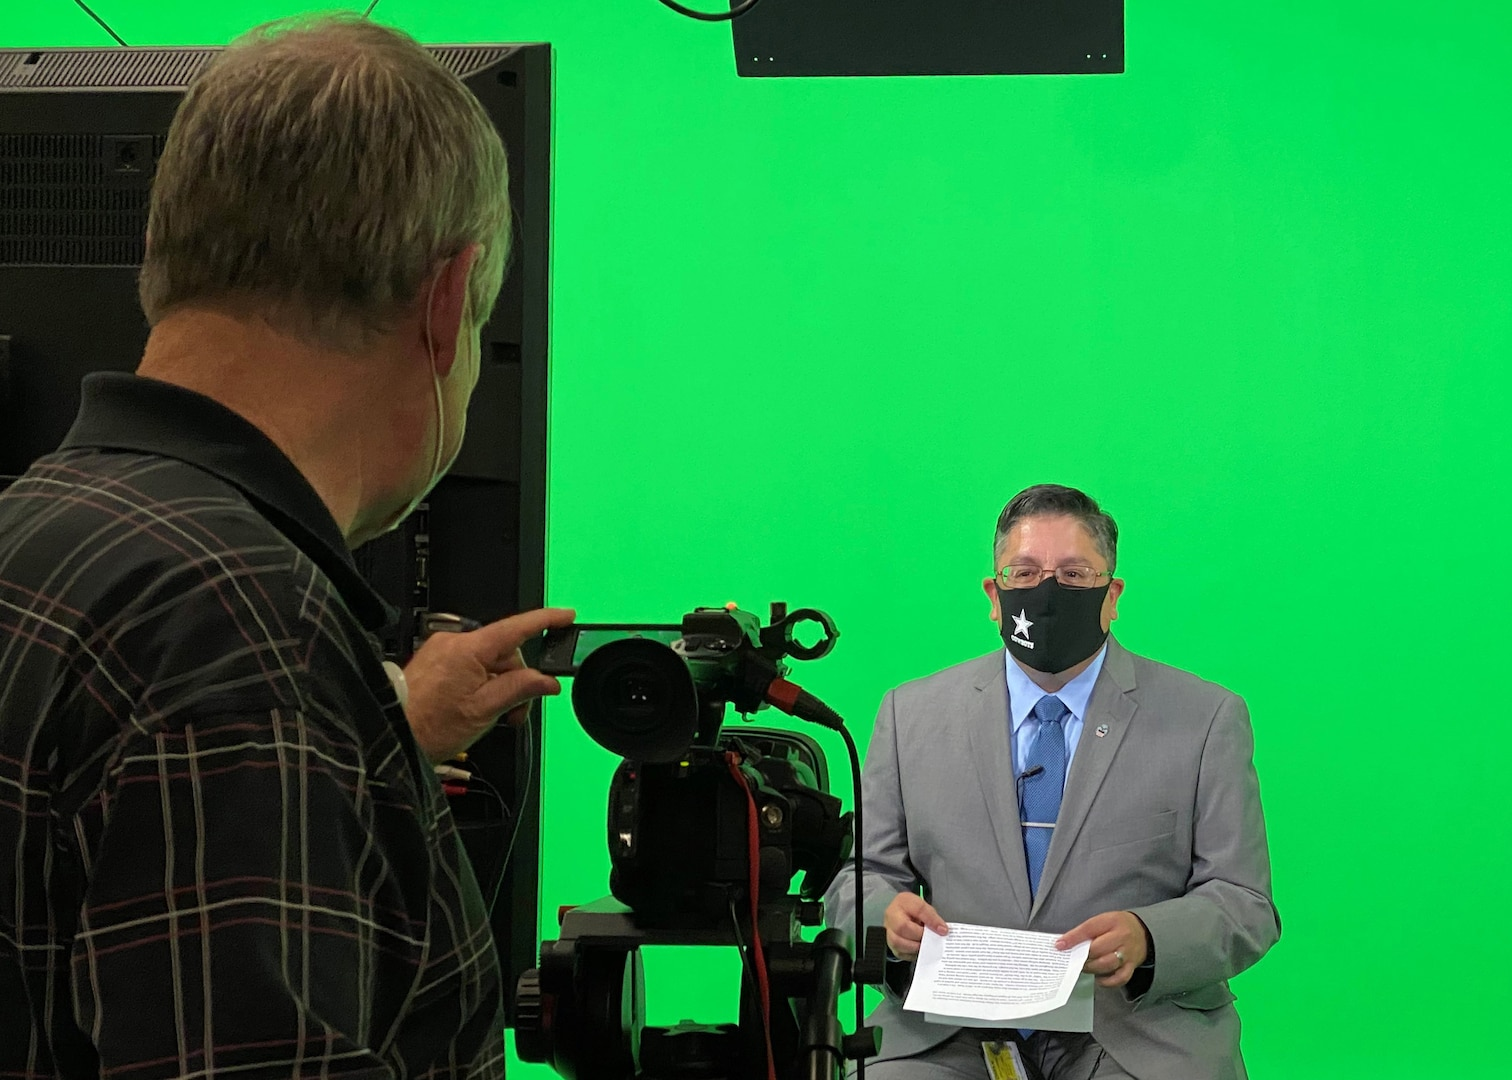 A customer account manager for DLA Disposition Services in Battle Creek, Michigan sits in front of a green screen in a TV studio.